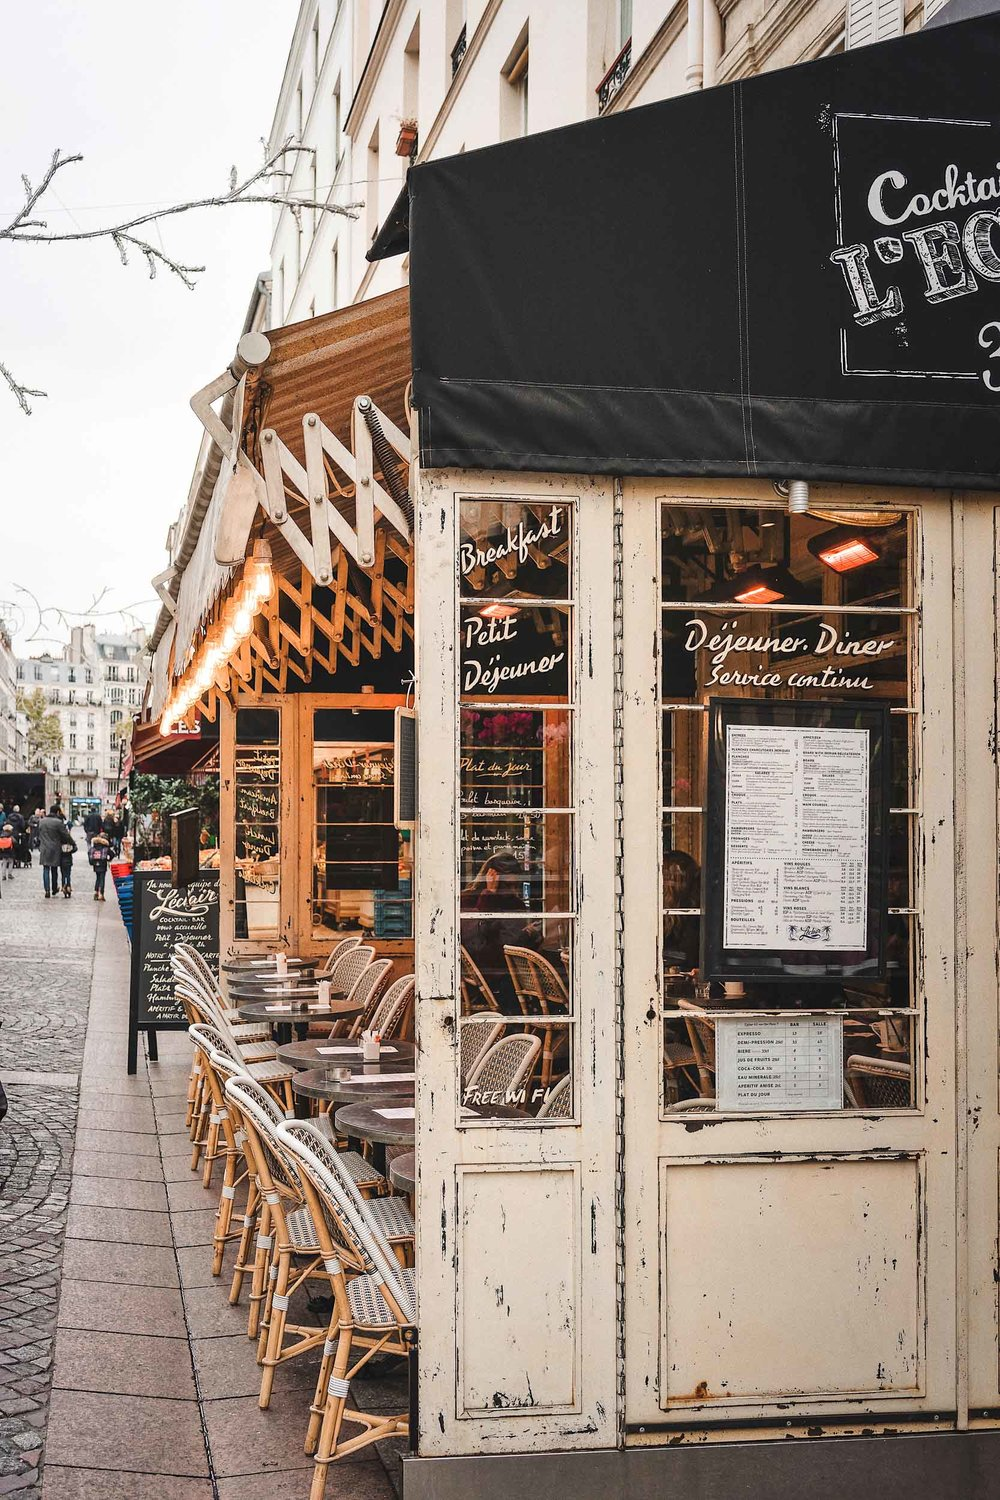 Things you can't miss on your Paris itinerary: stroll through Rue Cler and stop at L'Eclair for cocktails